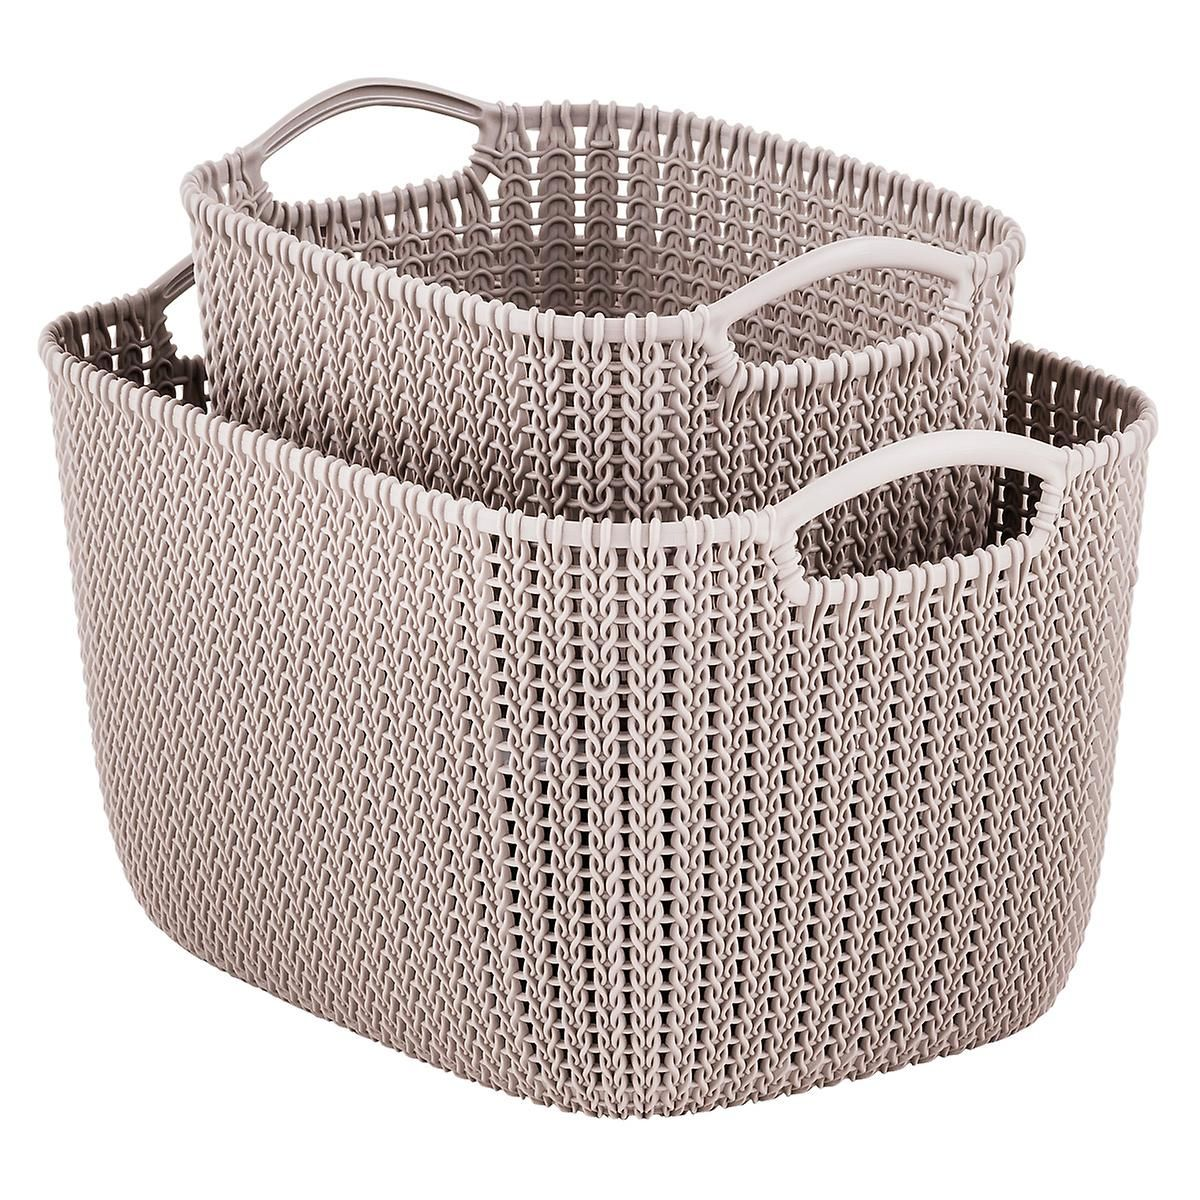 Curver Sand Knit Storage Baskets The Container Store Storage Baskets Toy Storage Baskets Knit Basket